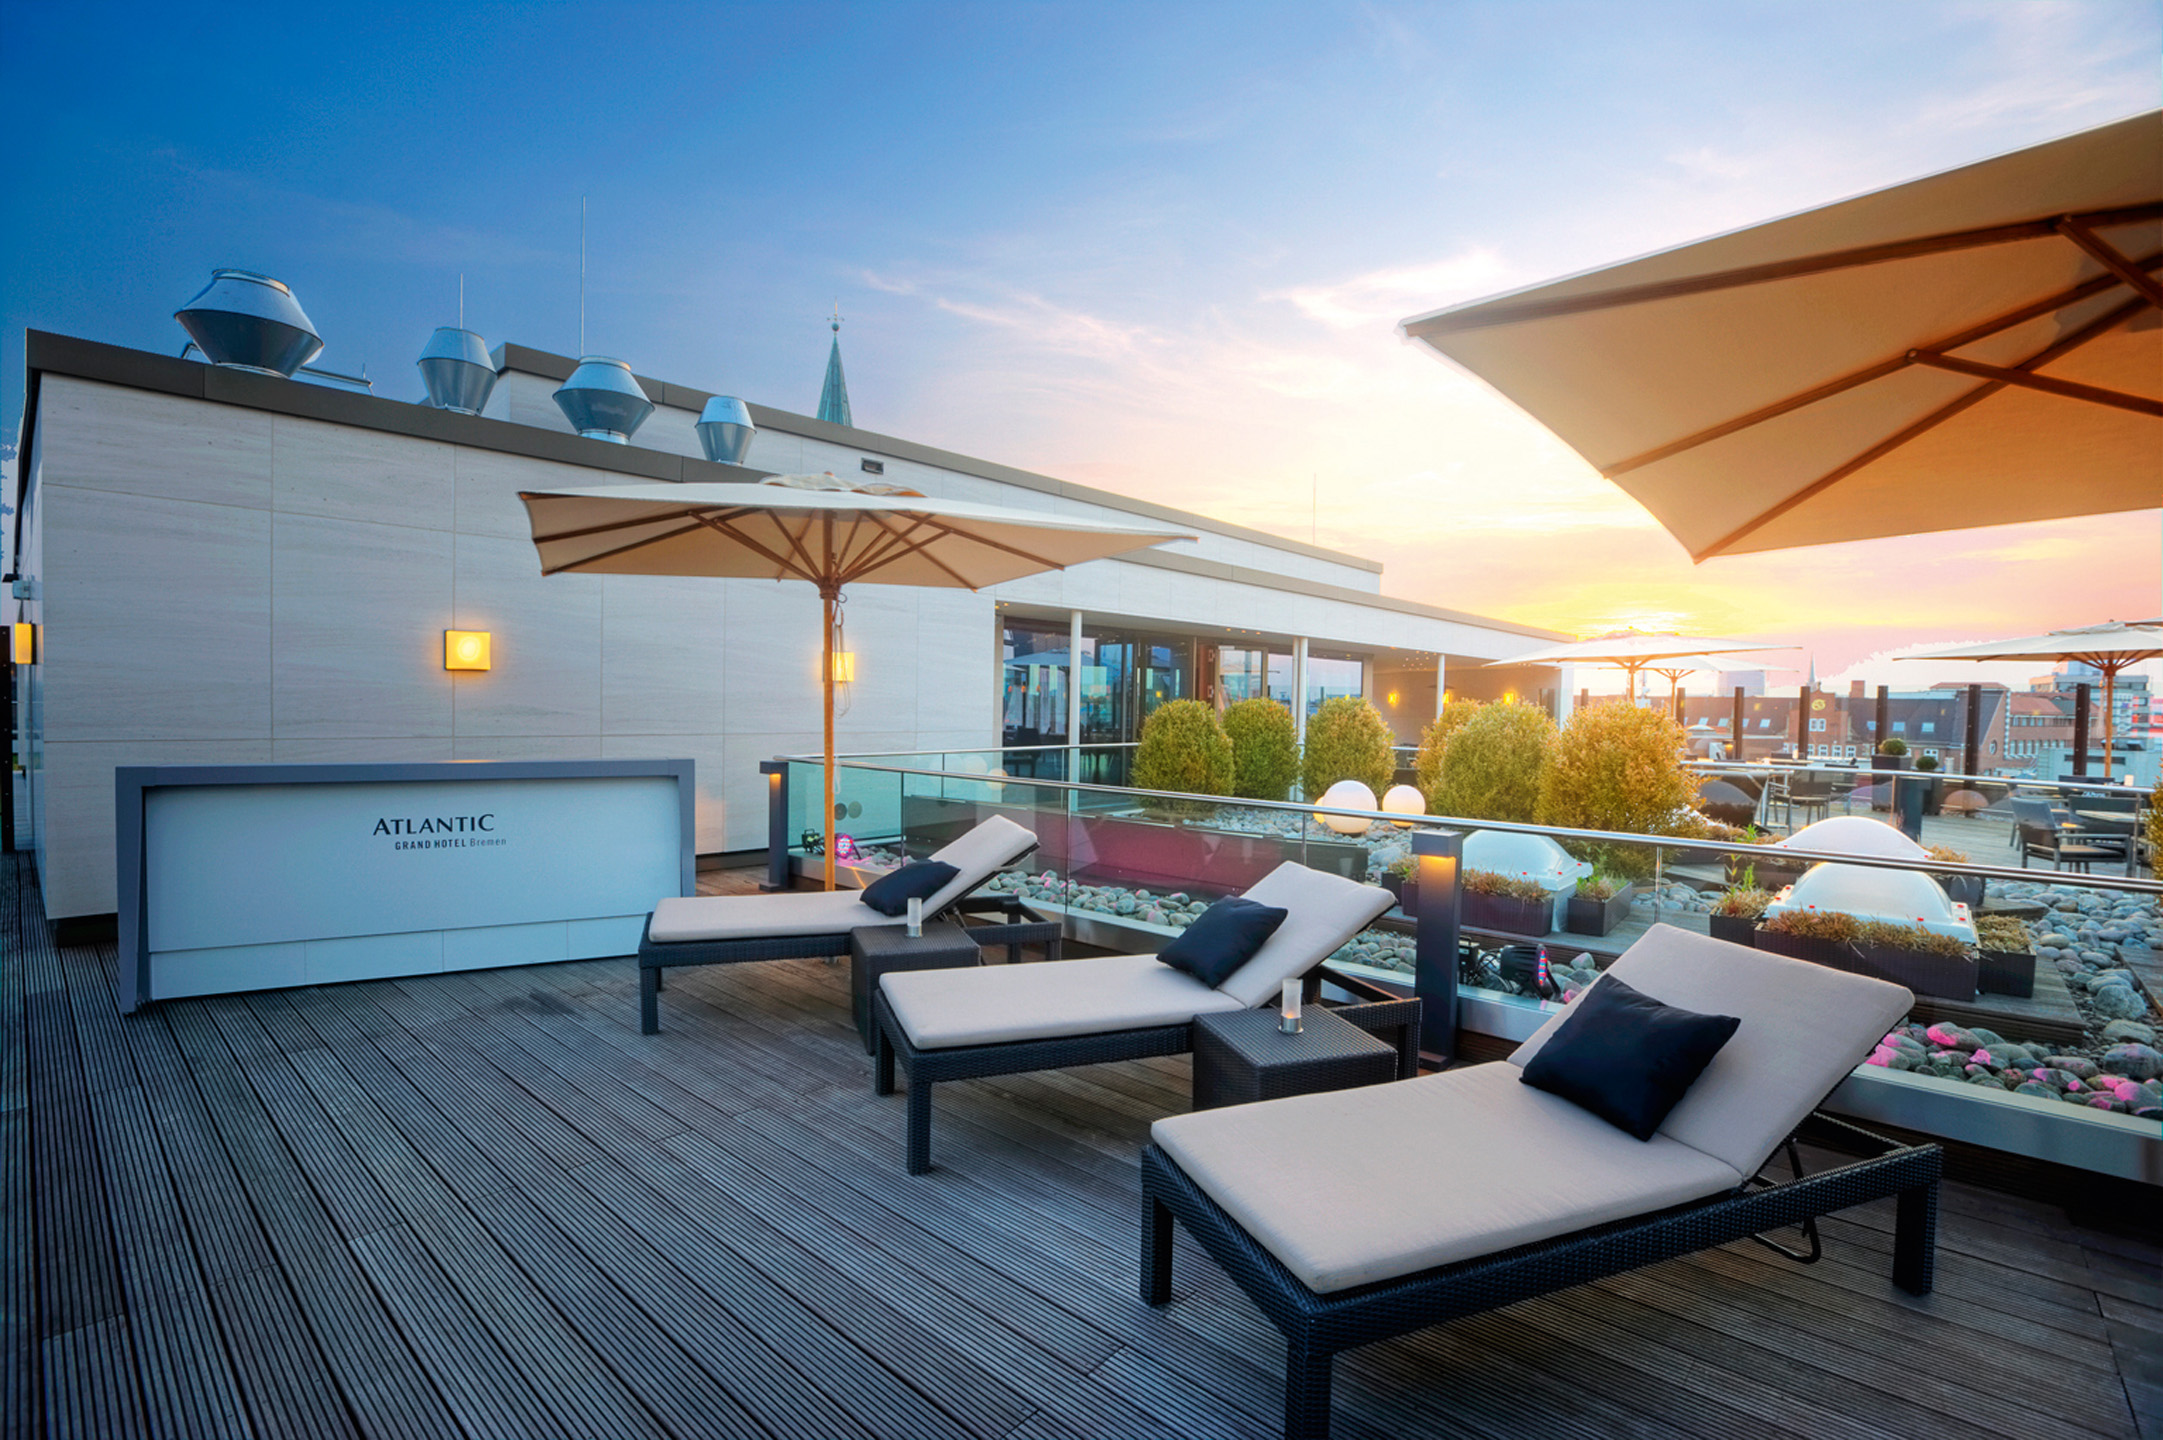 Rekax in our Roof Lounge and enjoy the view over Bremen